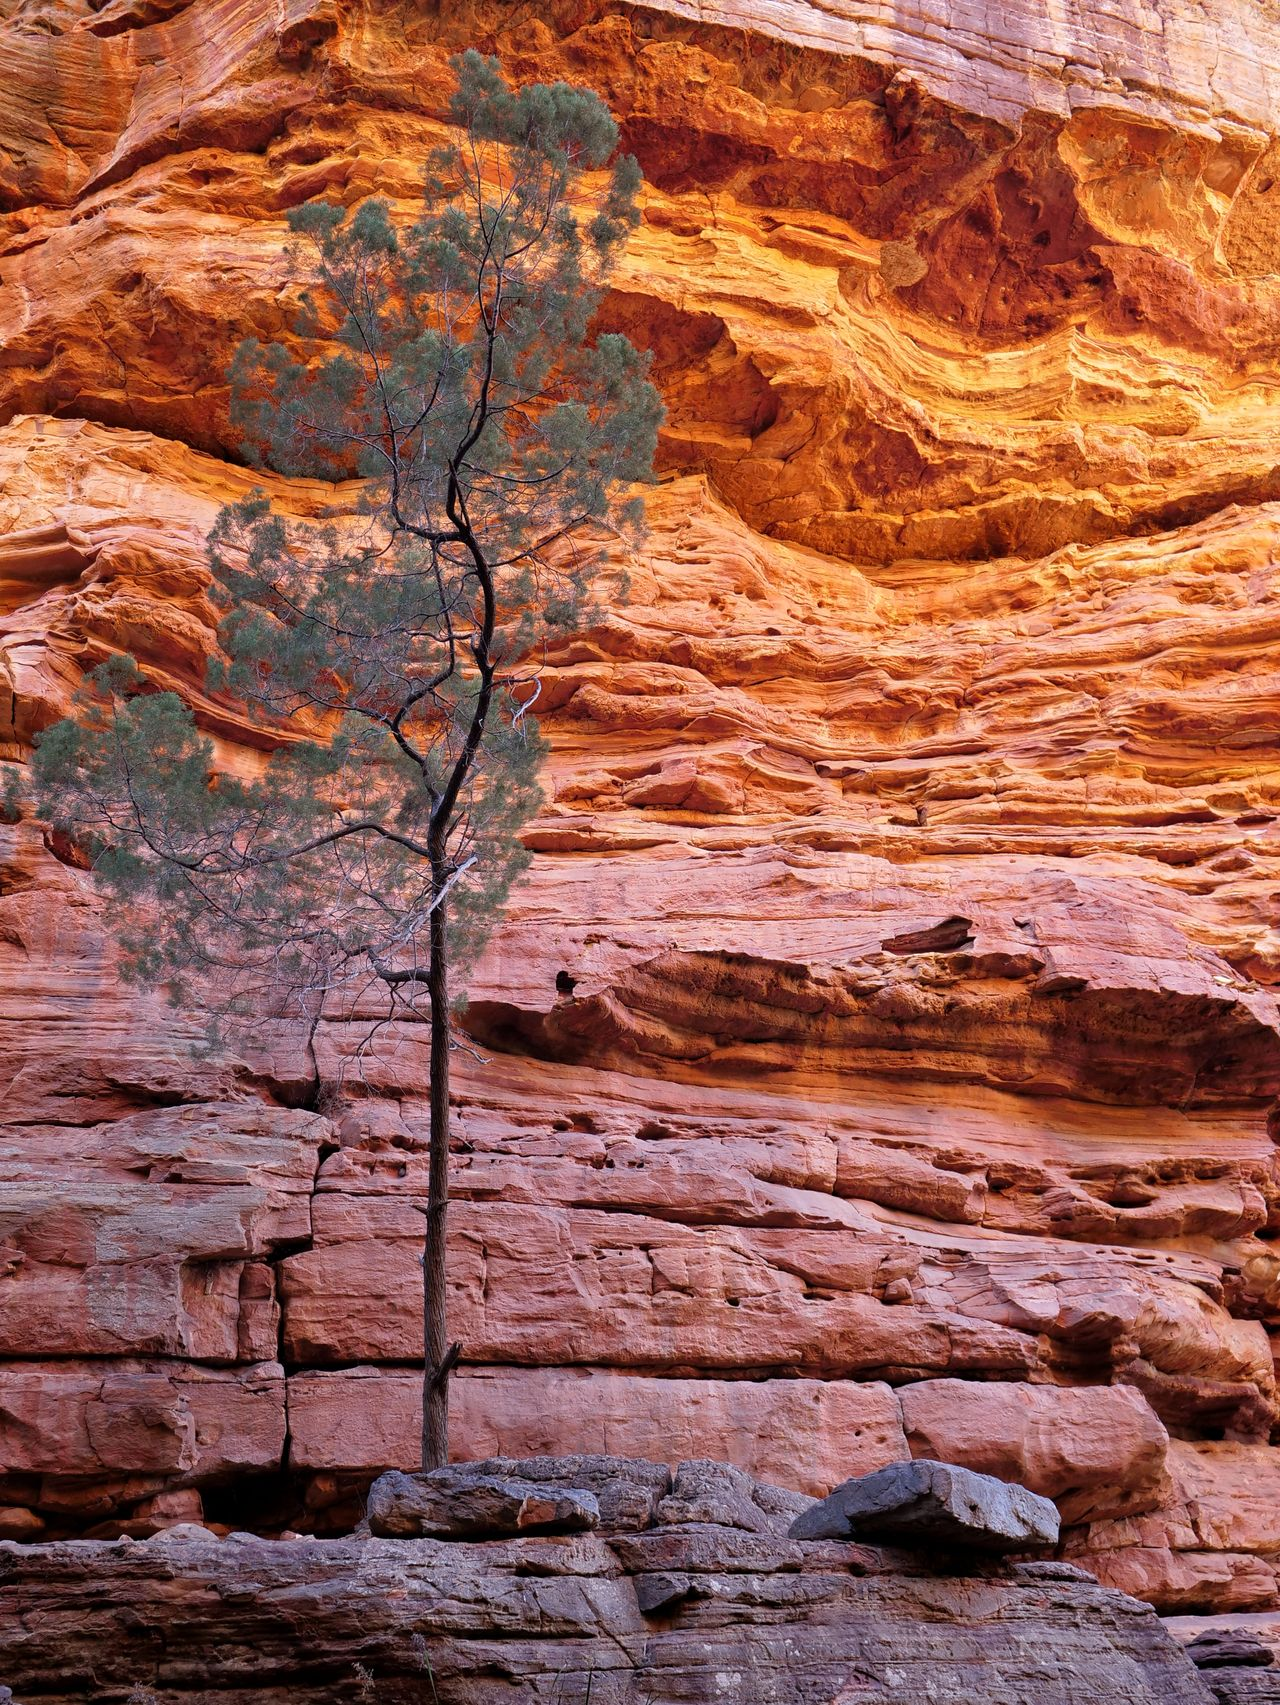 Tree against rock formations